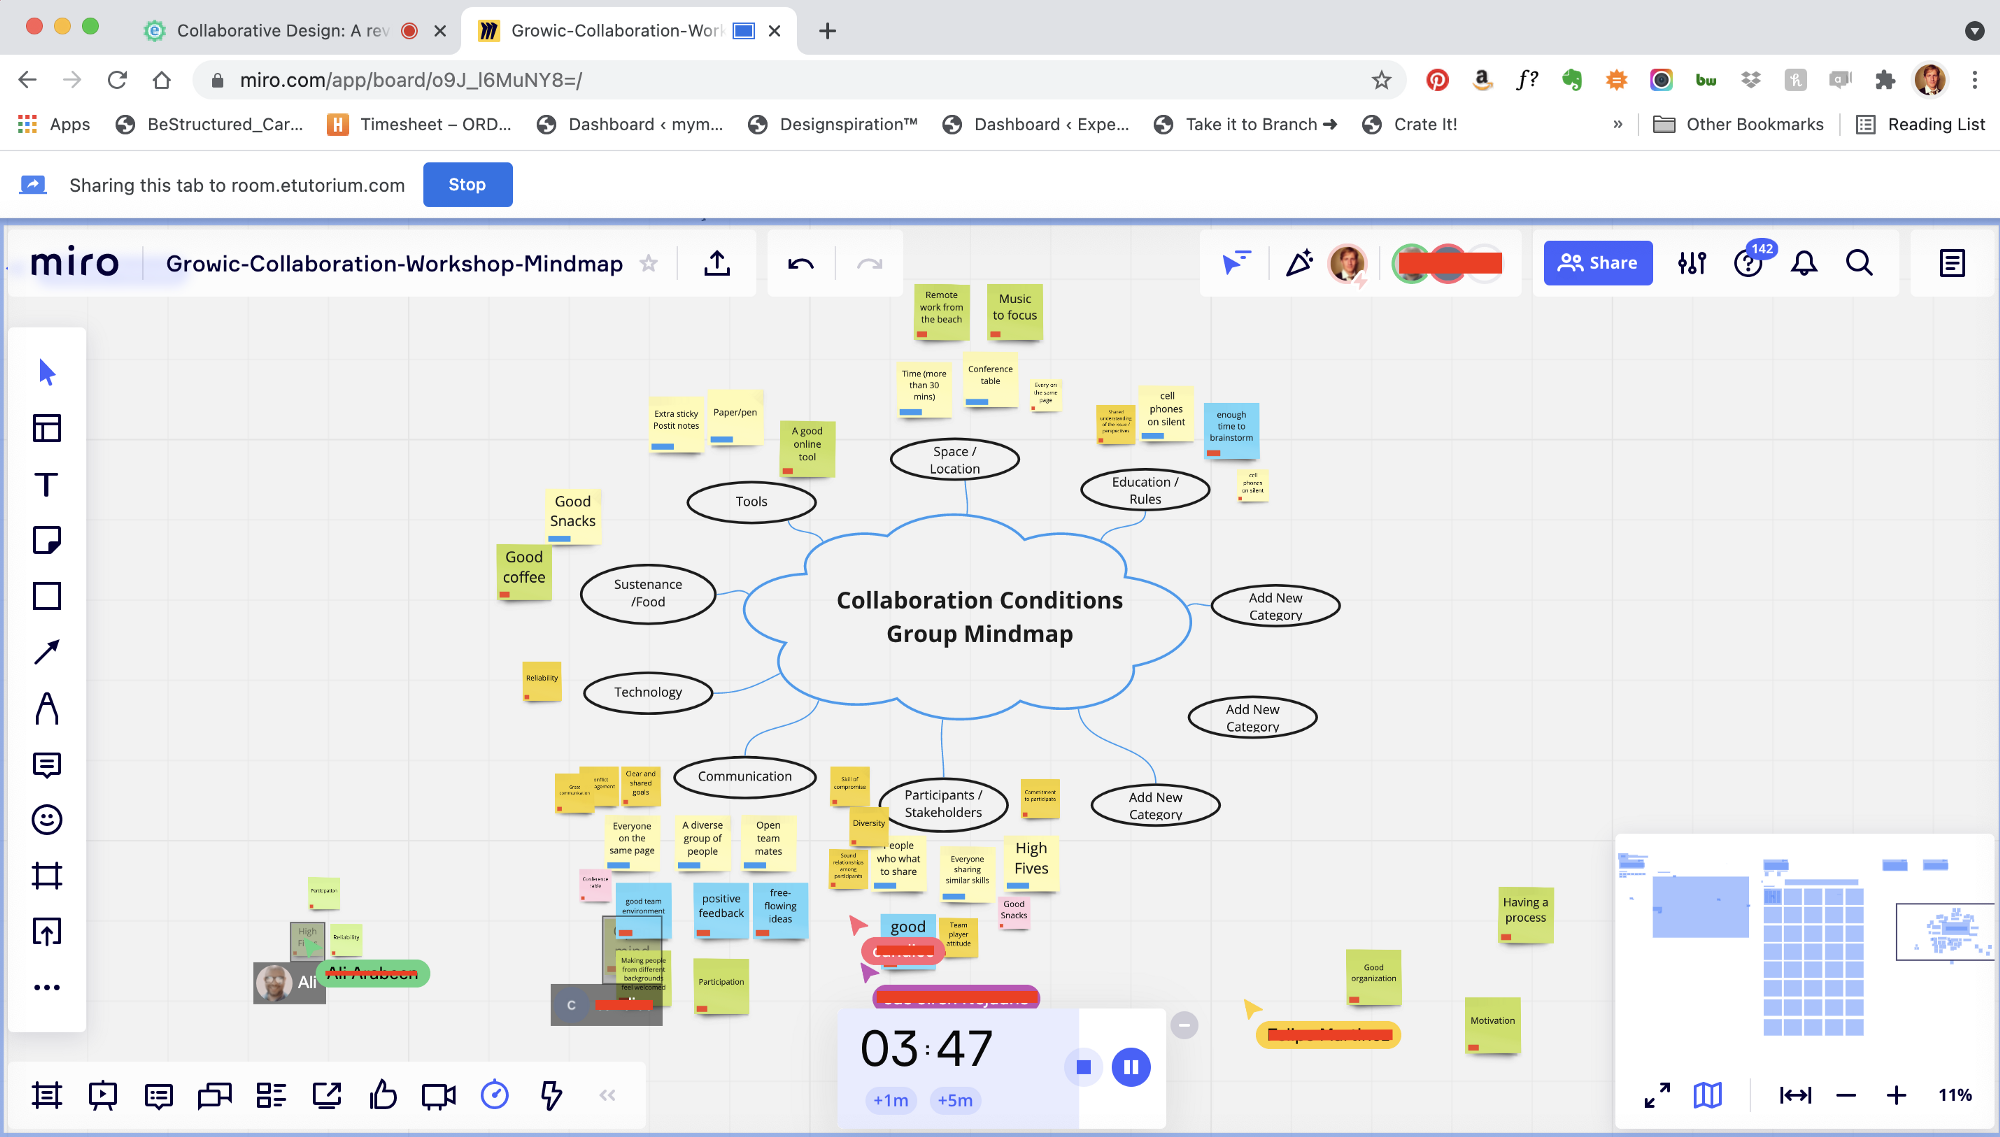 An image of a miro whiteboard canvas from a collaborative mind mapping activity. Shows students collaborating on articulating the conditions for making collaboration successful.